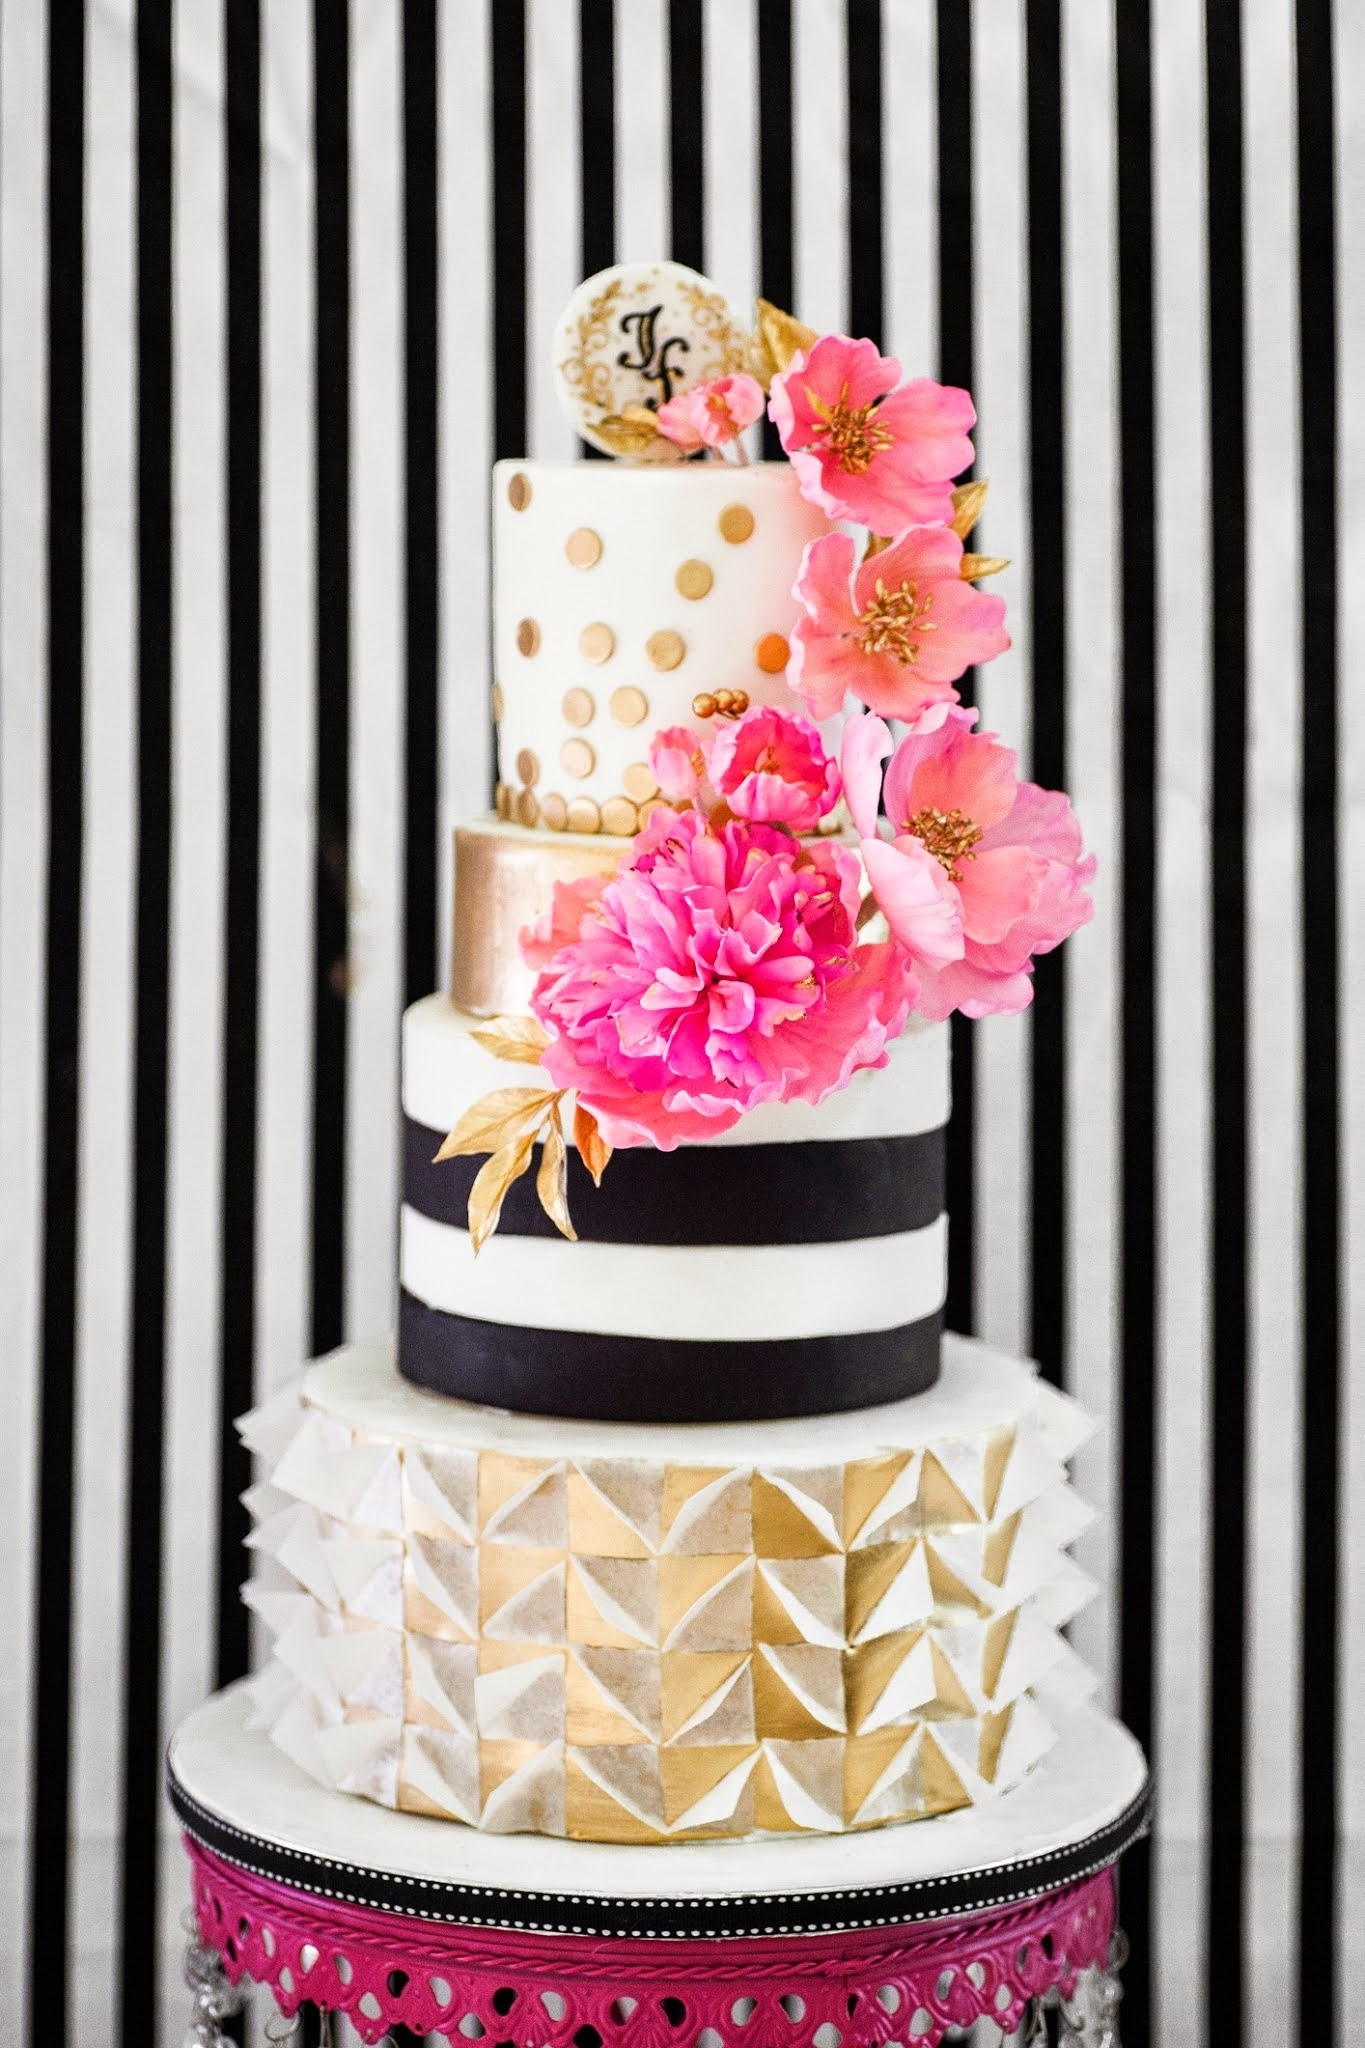 Striped with Polka Dot Wedding